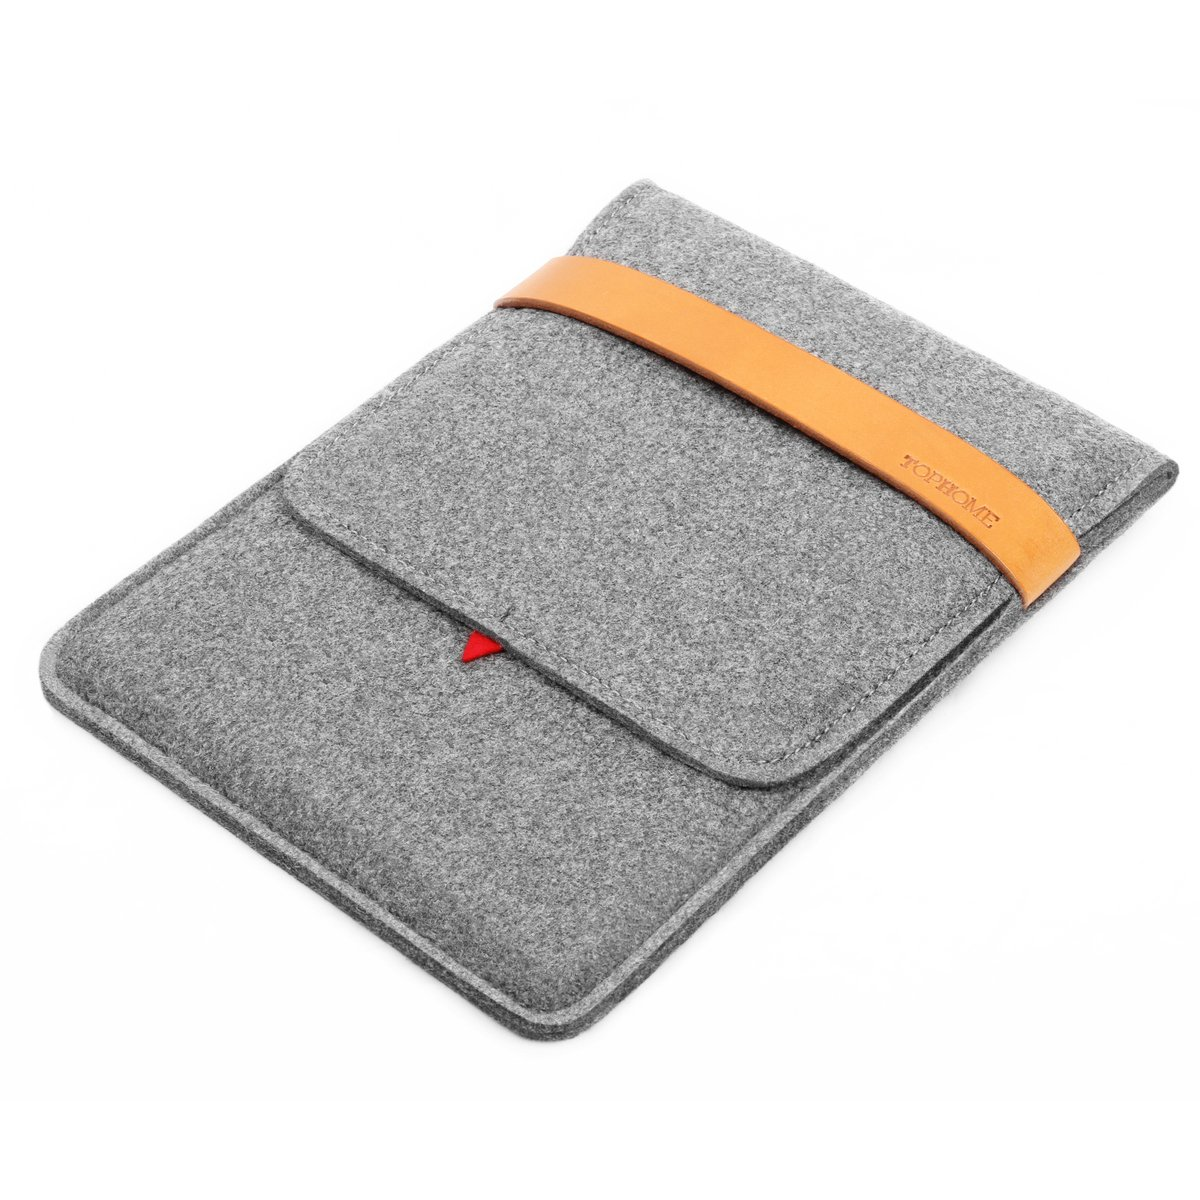 TOPHOME Tablet Sleeve Bag Case Carrying Protector Genuine Leather Lock Compatible for iPad Air/iPad Air 2/9.7-inch iPad Pro, Grey